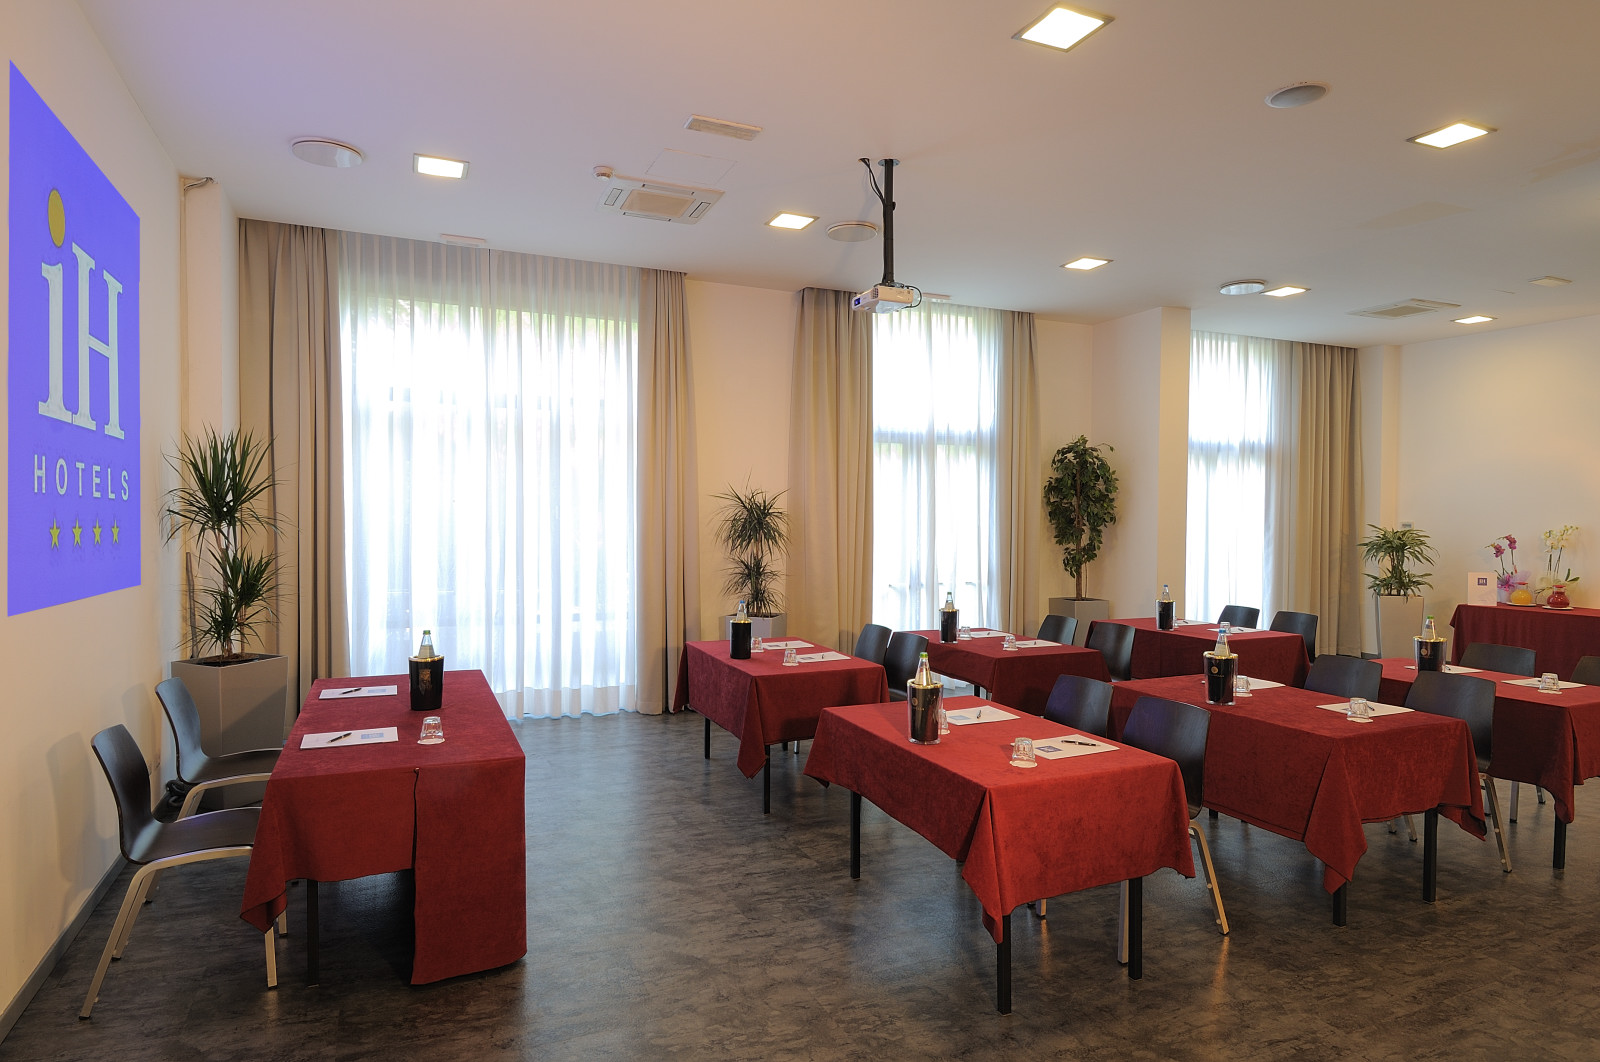 IH Hotels Milano Lorenteggio - Meeting Room